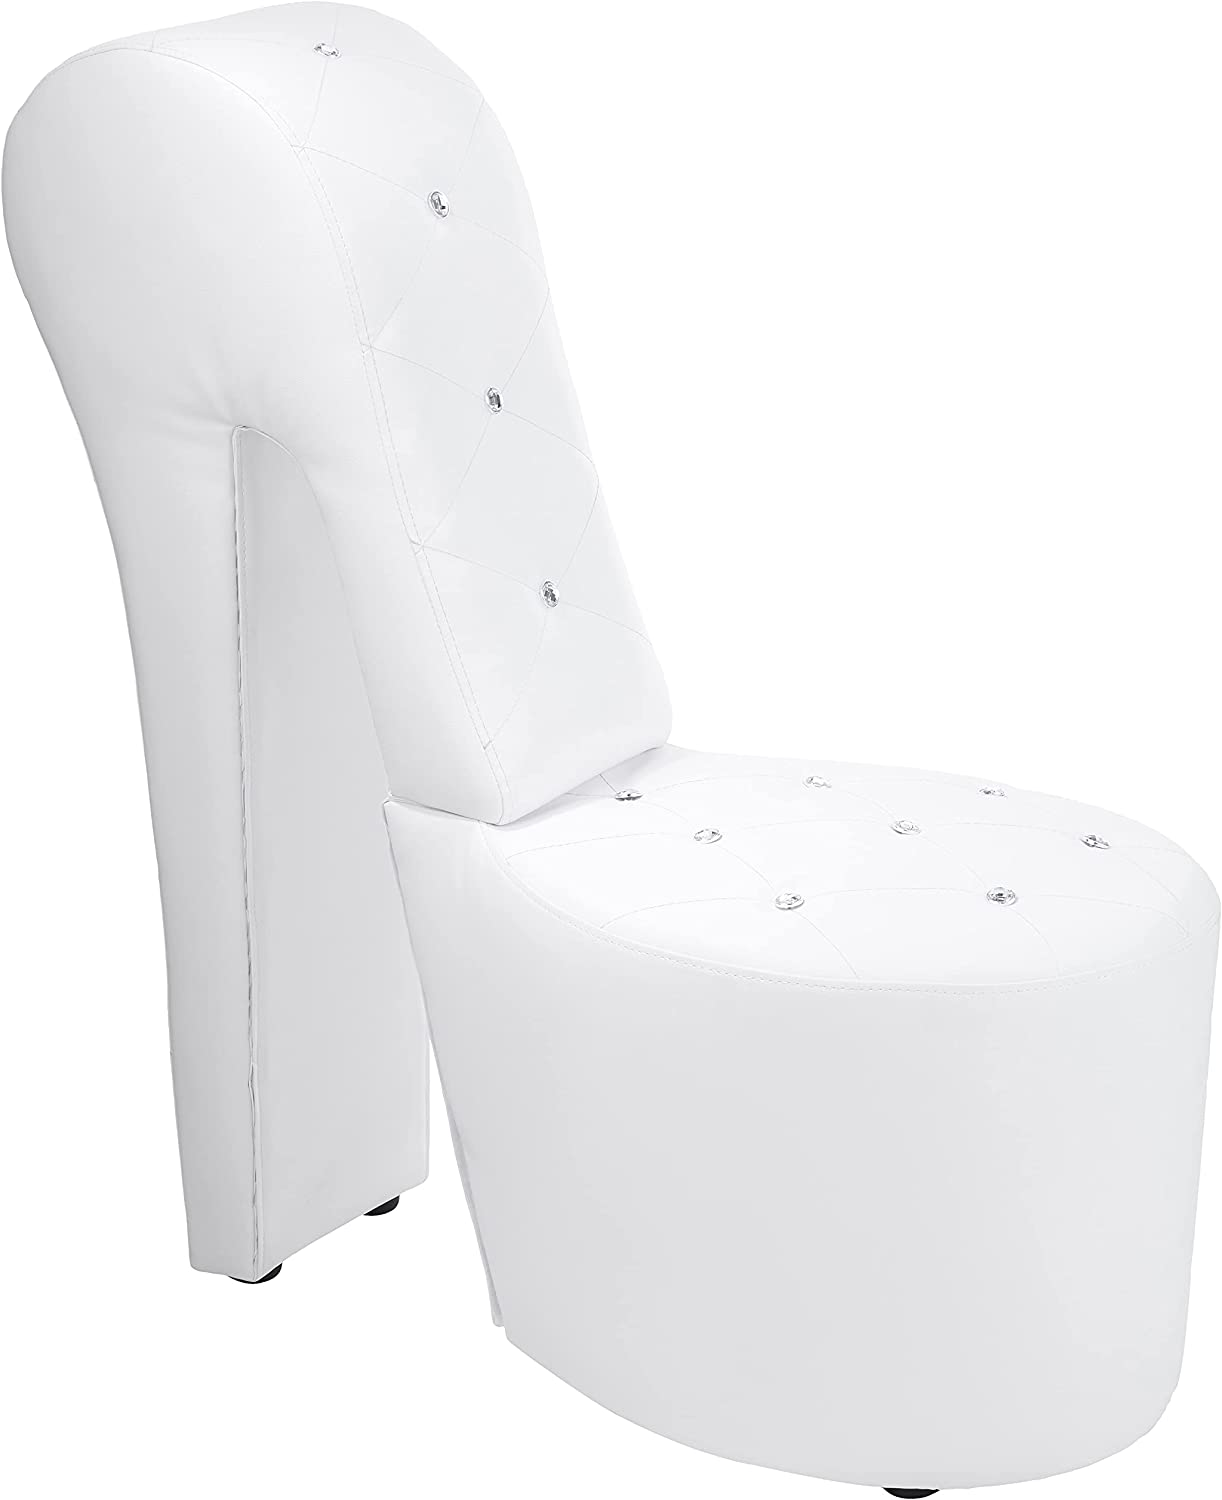 Best Master Furniture High Heel Faux Leather Shoe Chair with Crystal Studs, White